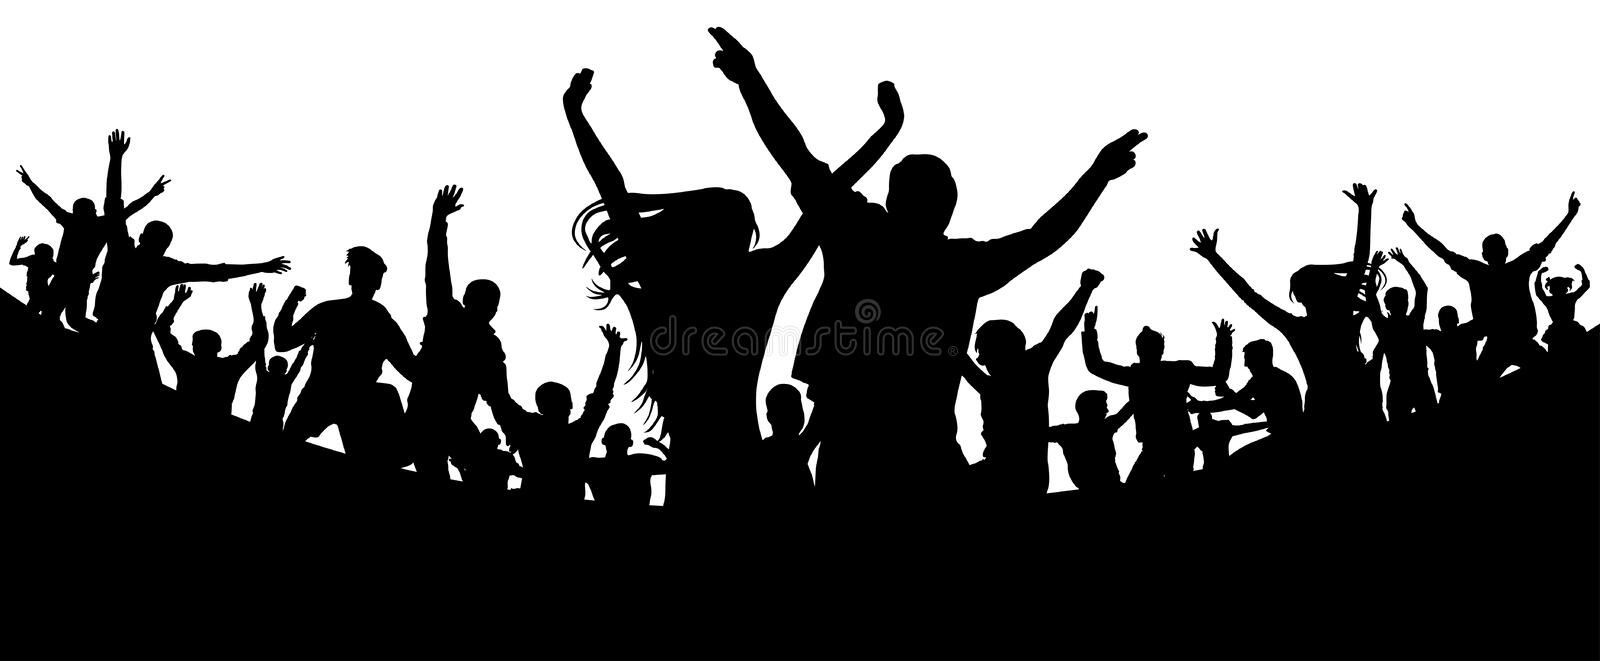 Party, concert, dance, fun. Crowd of people silhouette vector. Cheerful youth royalty free illustration